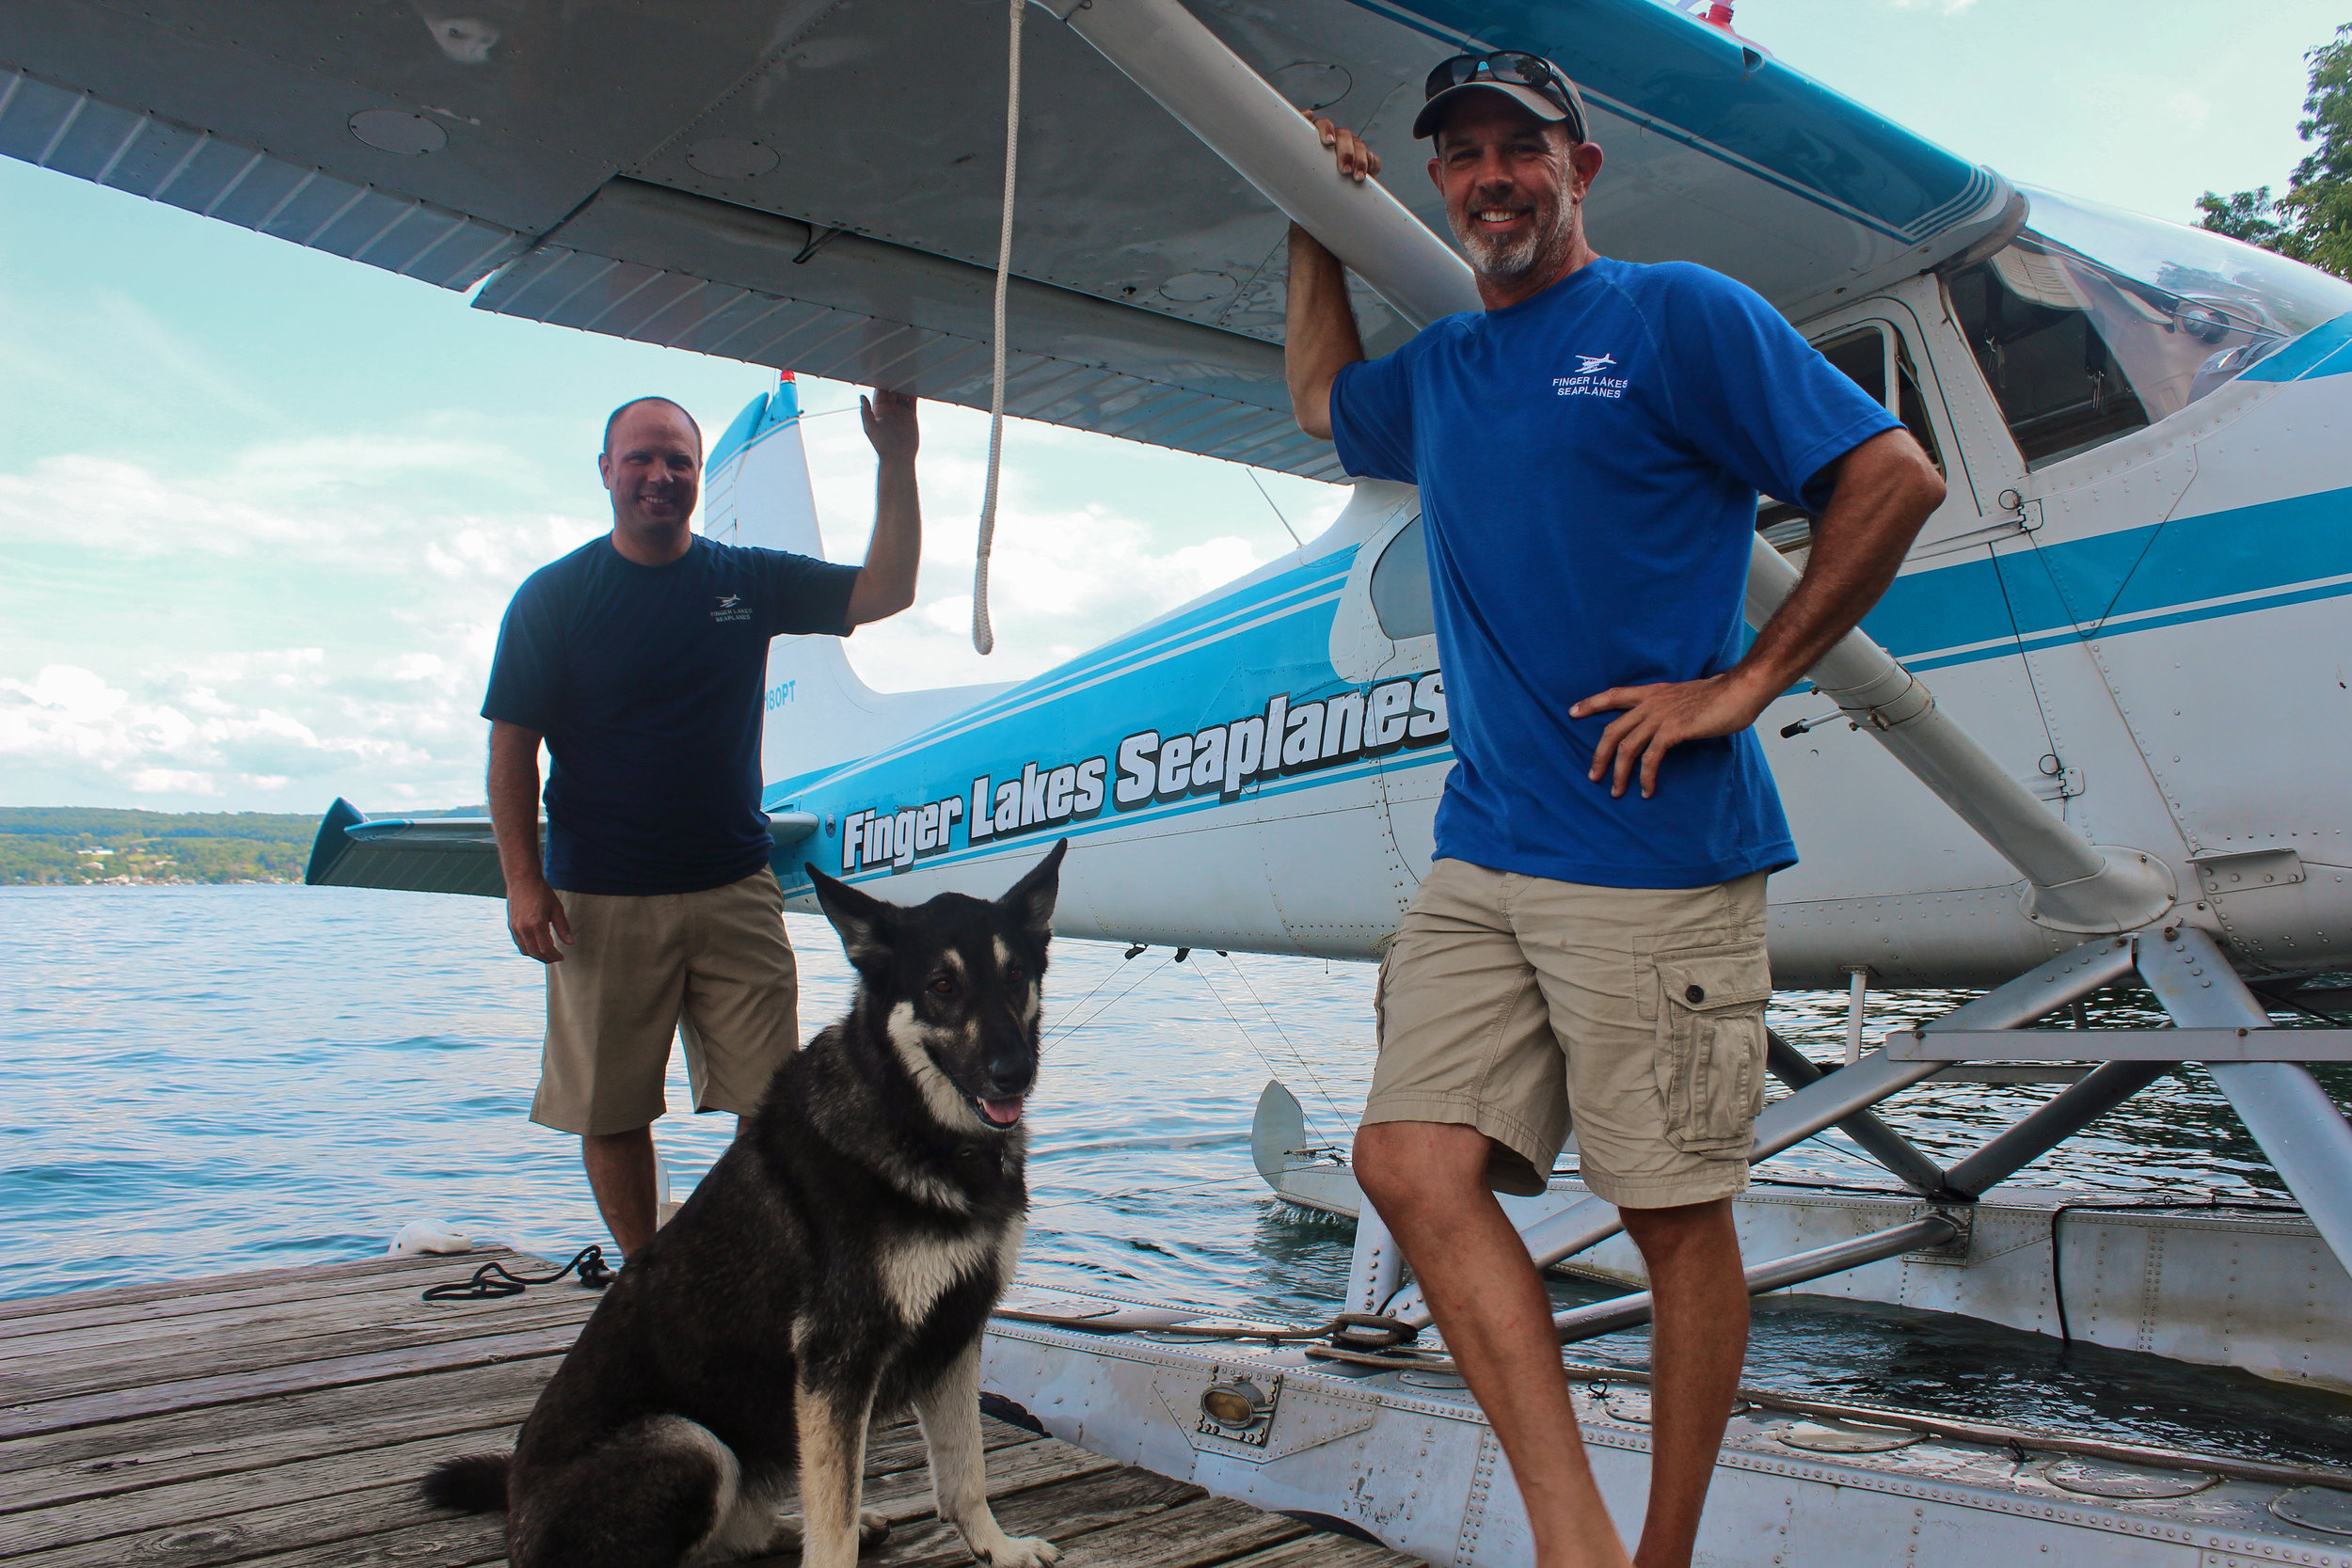 Andy Sable & Bob Knill (and Fritz!) of   Finger Lakes Seaplanes